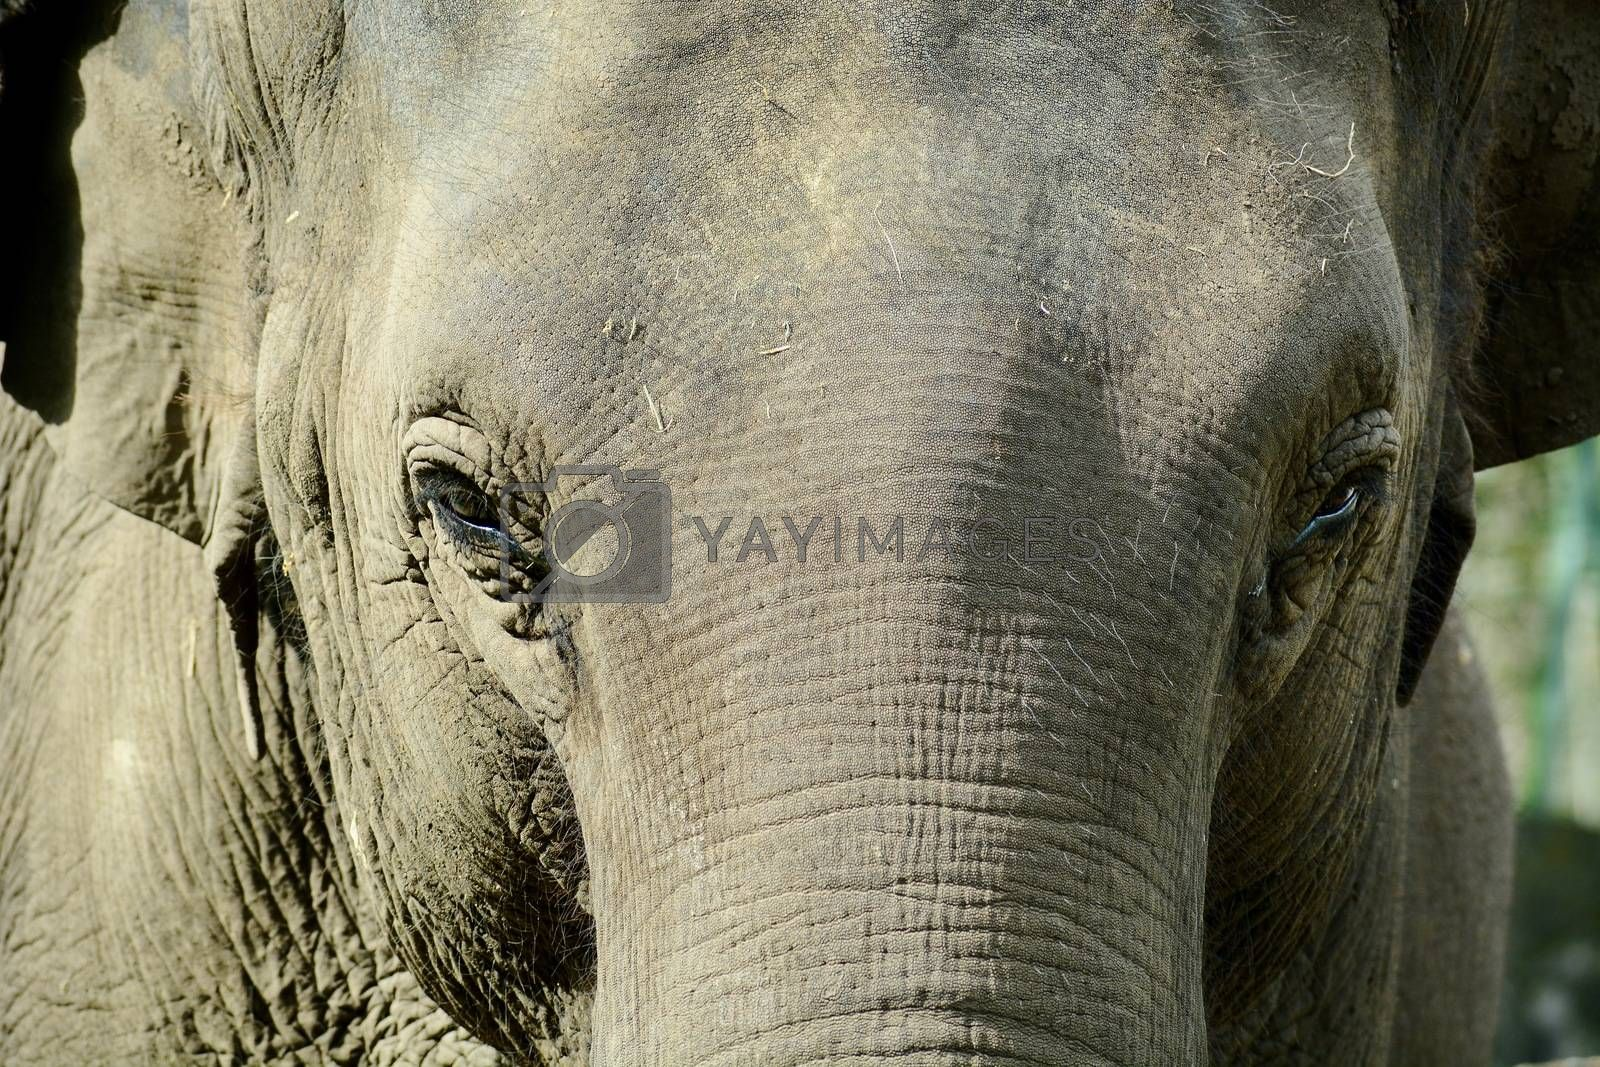 The Asian elephant is the largest living land animal in Asia